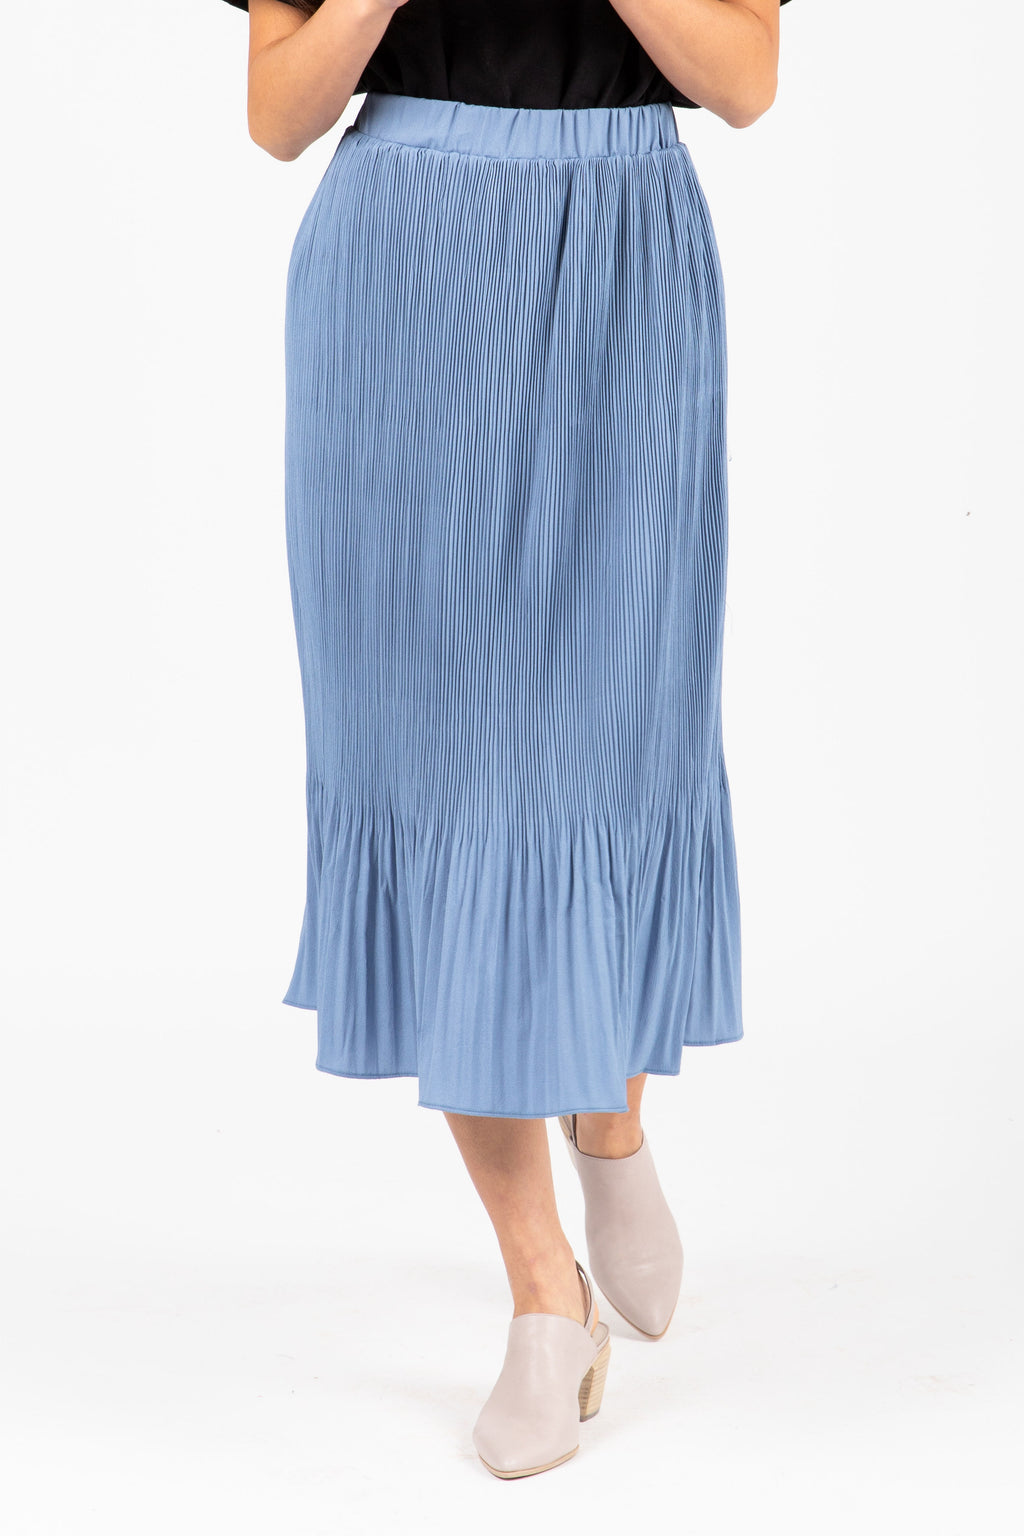 The Marley Pleated Midi Skirt in Periwinkle, studio shoot; front view